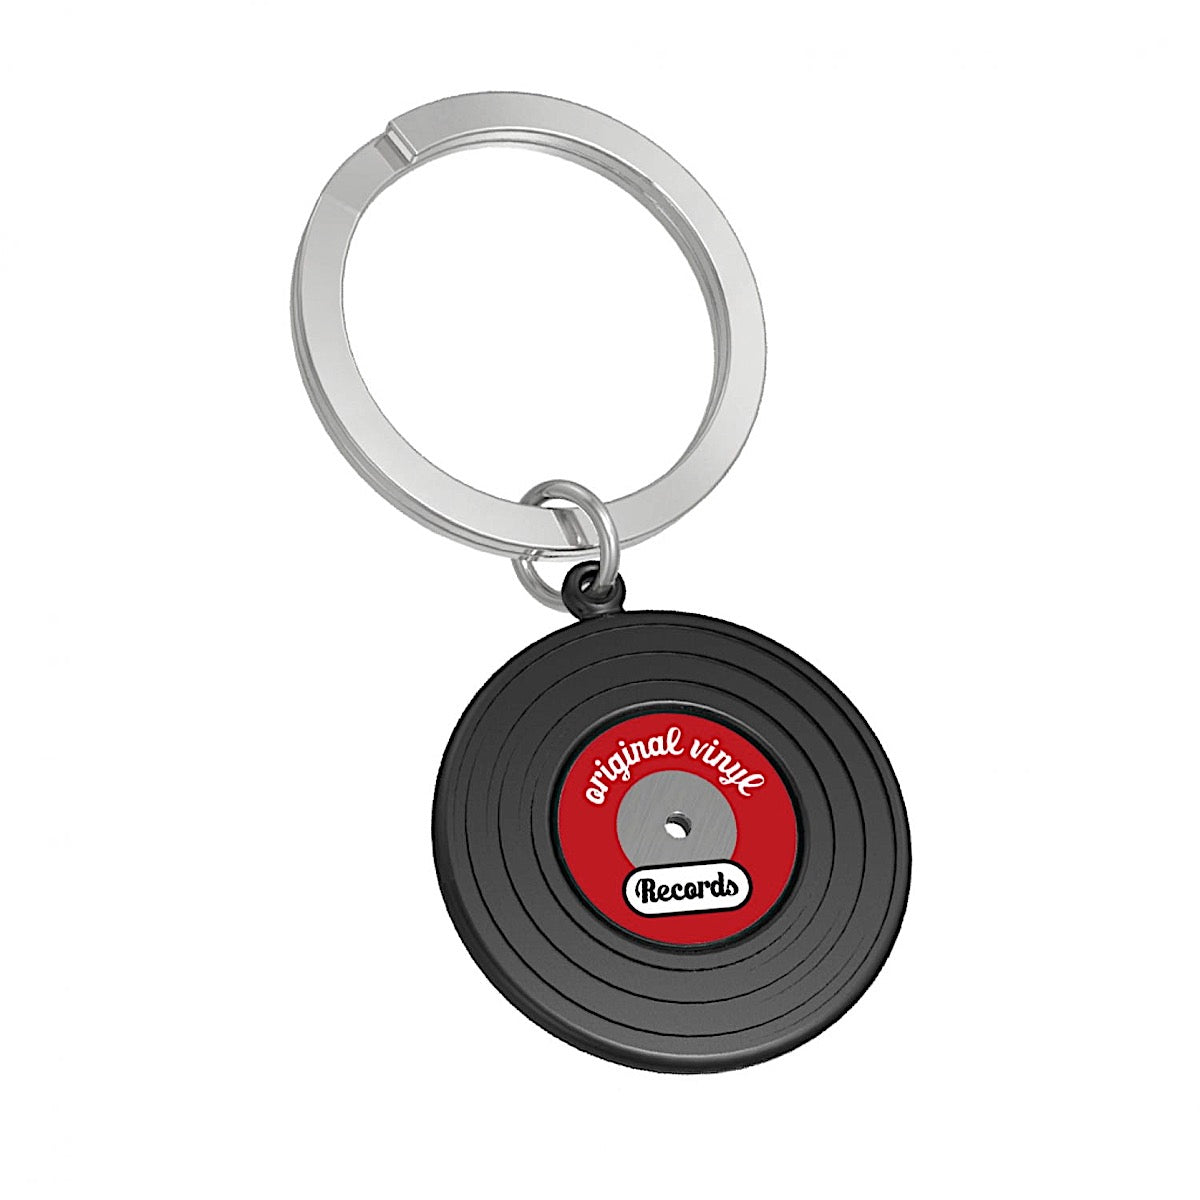 Metalmorphose Black Vinyl Record Keyring | More Than Just A Gift